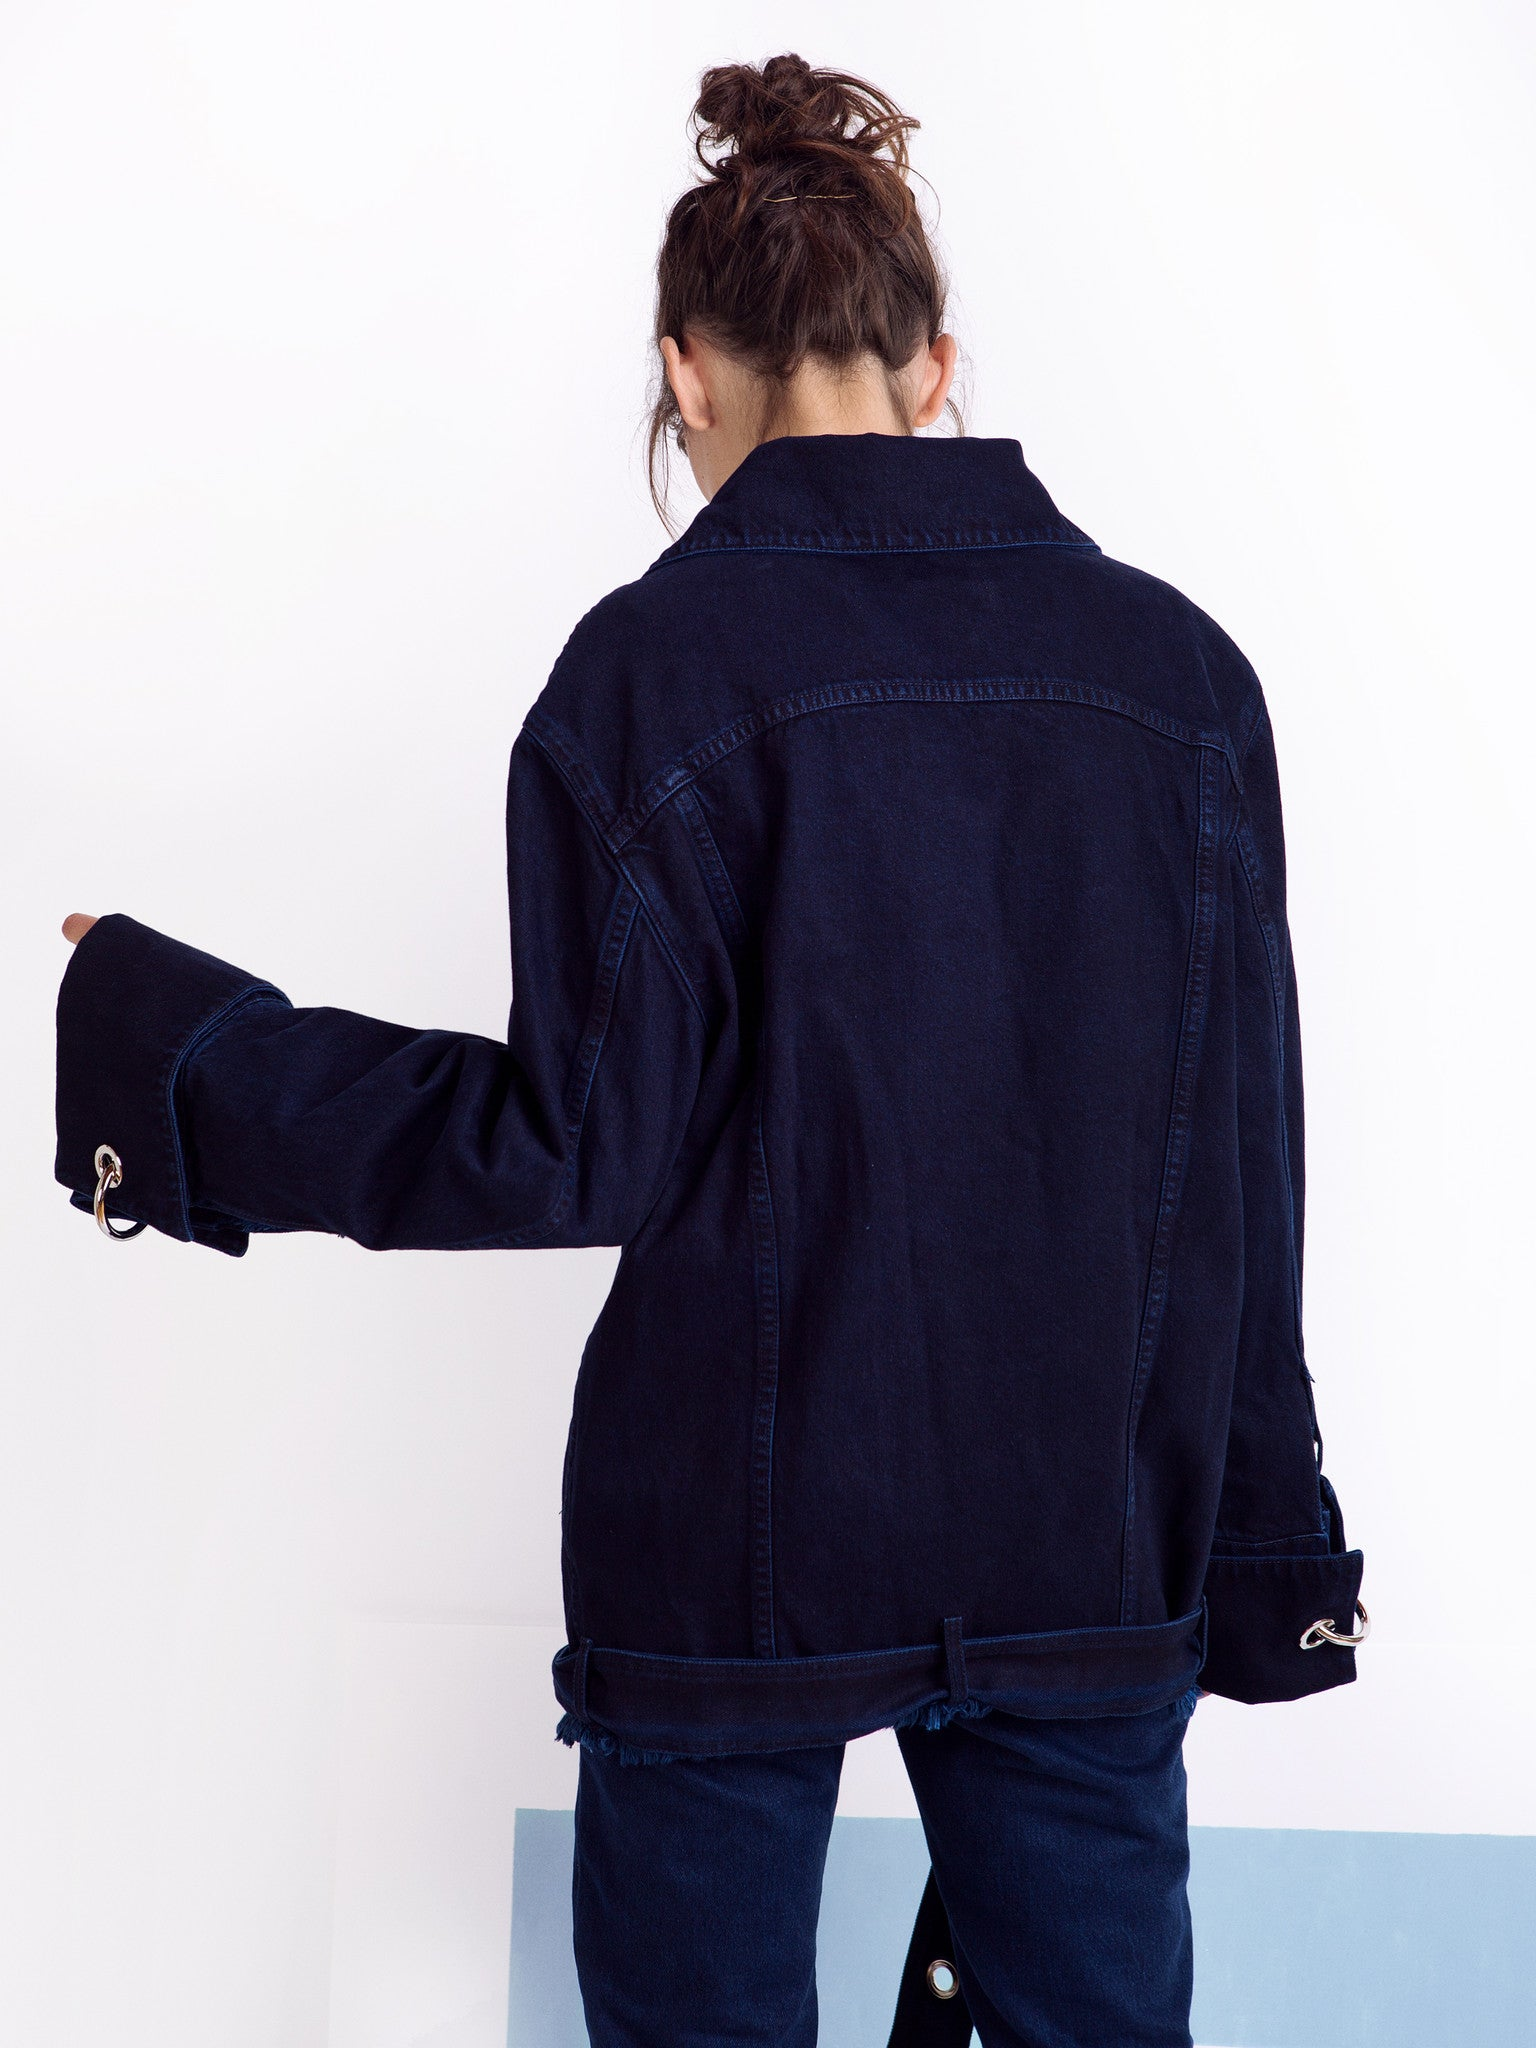 Marques'Almeida Unisex Denim Jacket Back